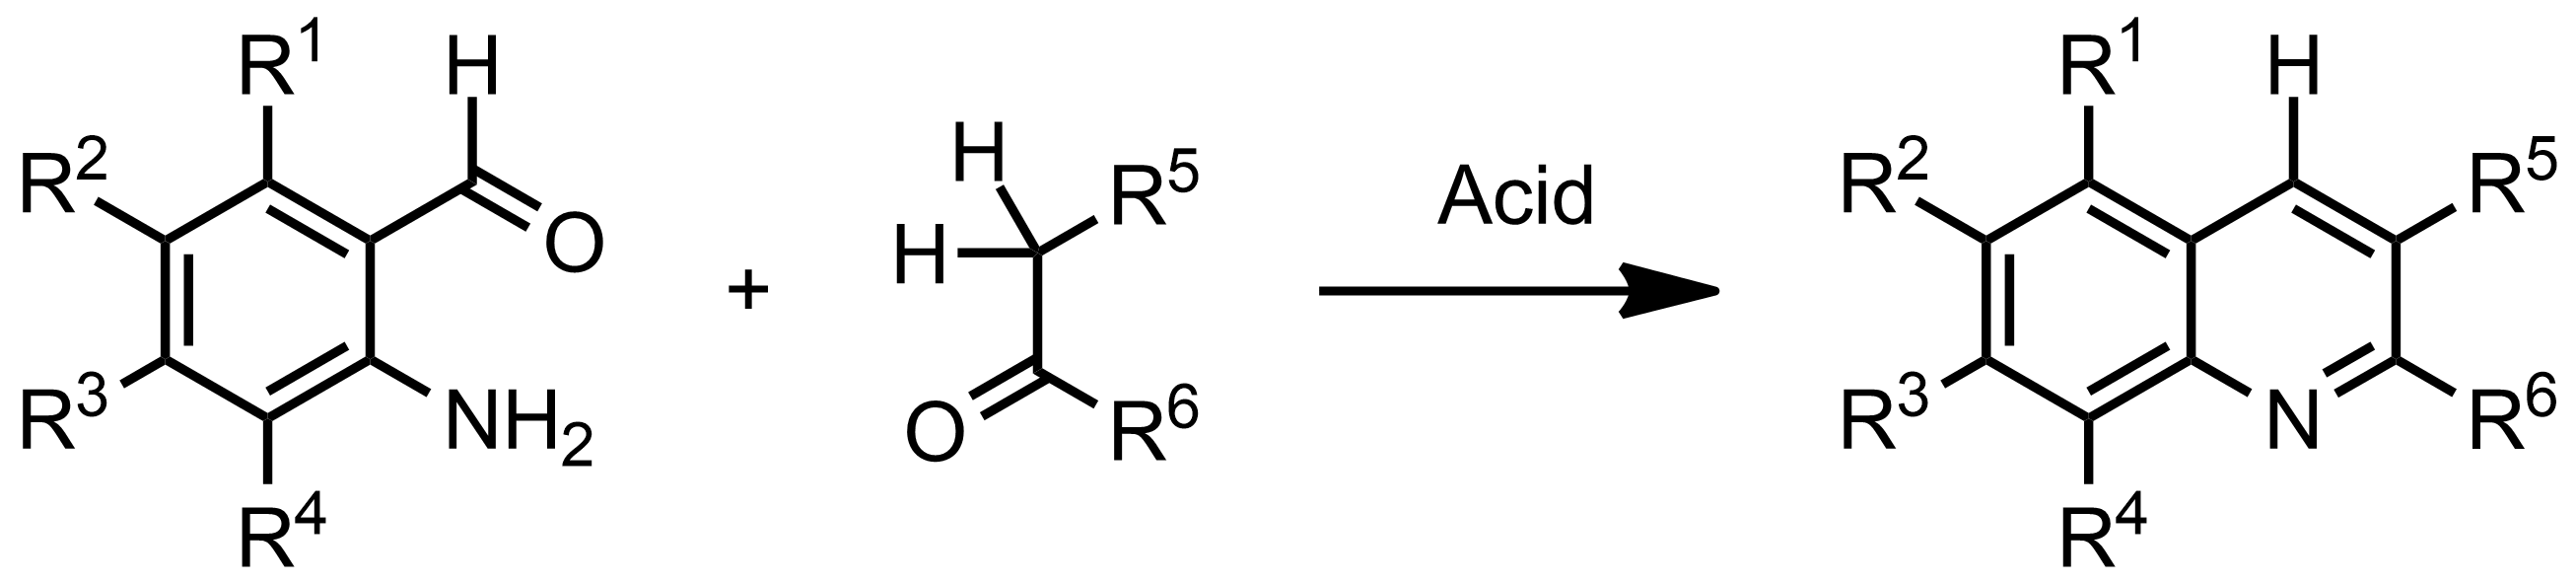 Schematic representation of the Friedländer synthesis.